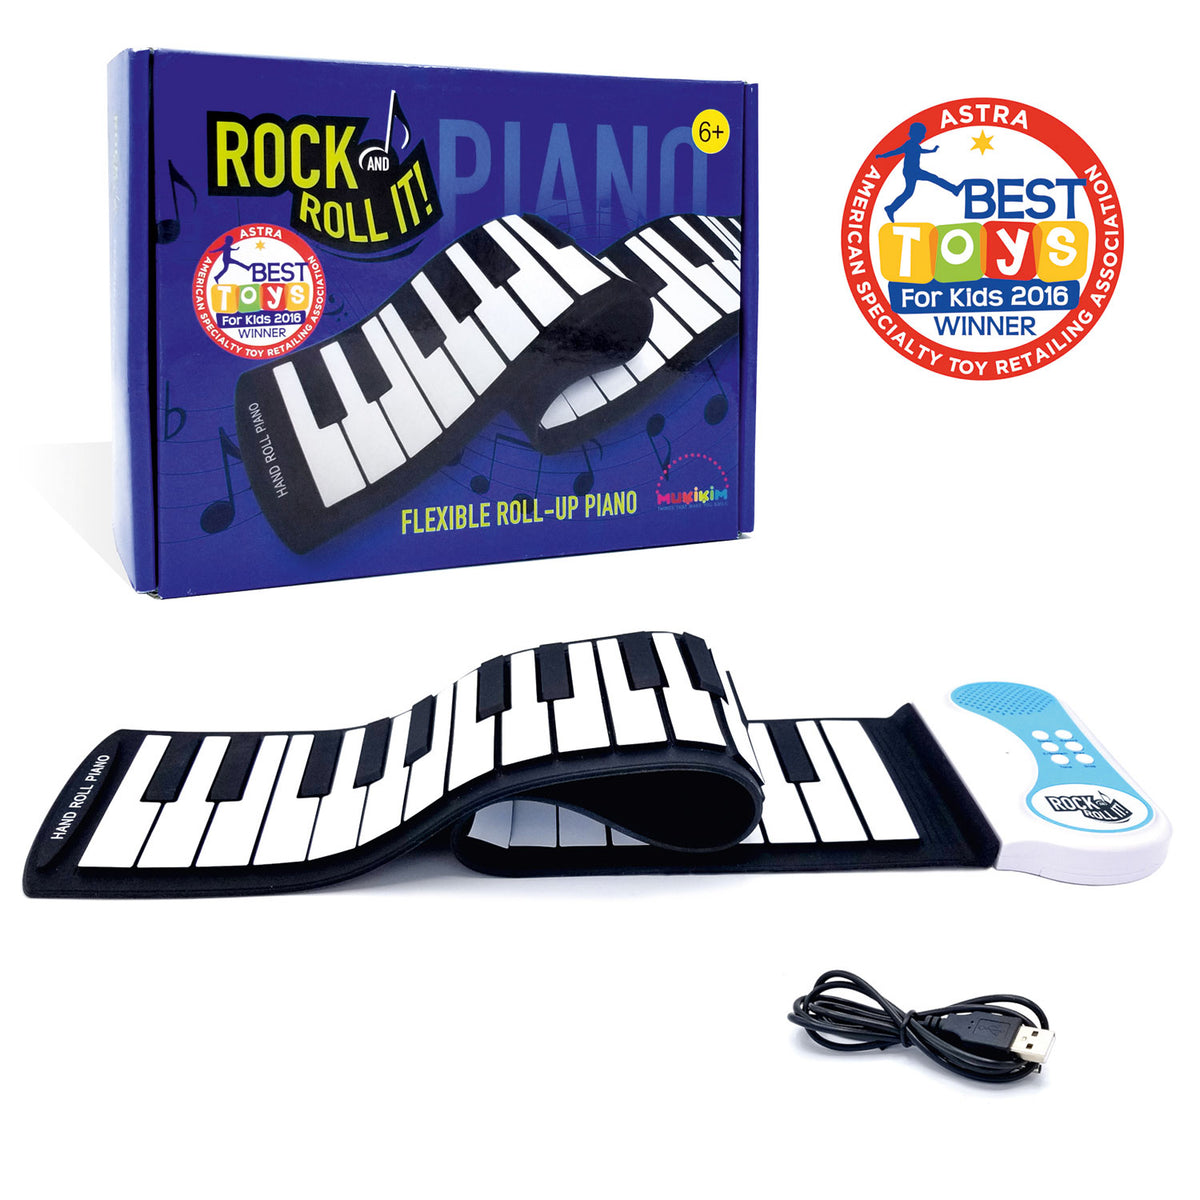 Rock And Roll It CLASSIC PIANO